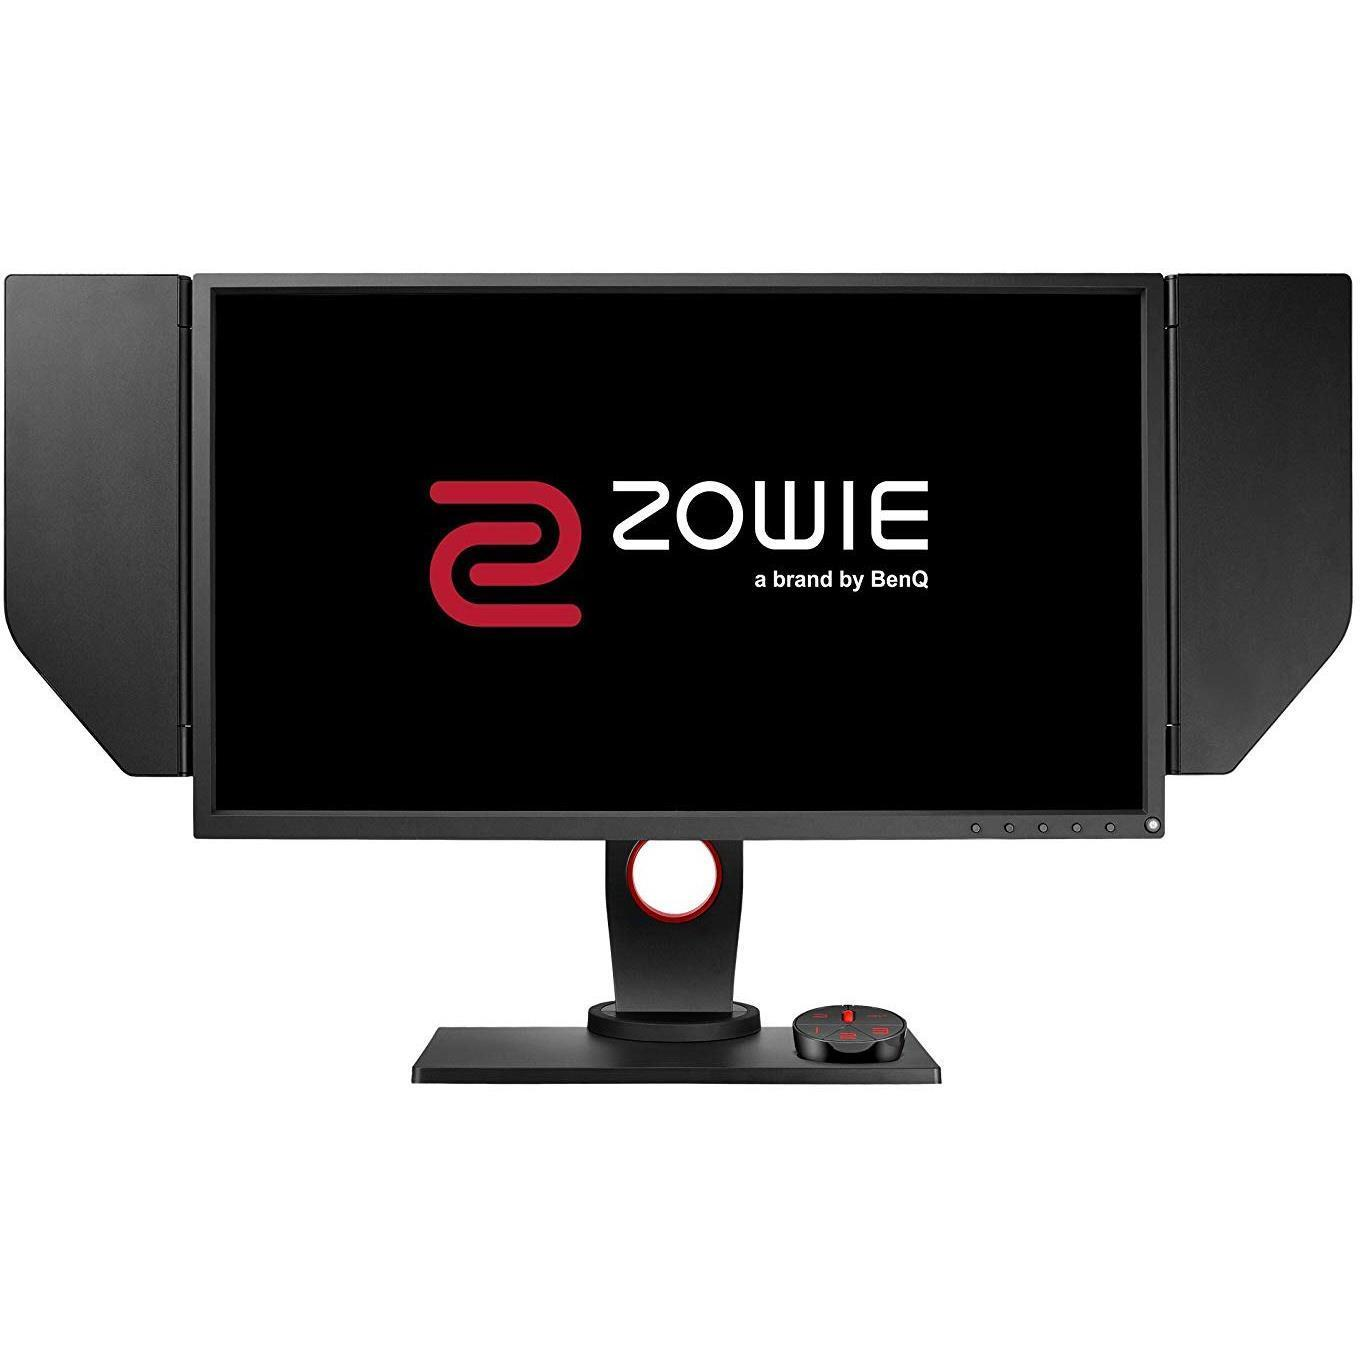 BenQ Zowie XL2546 24.5″ 240hz Gaming Monitor